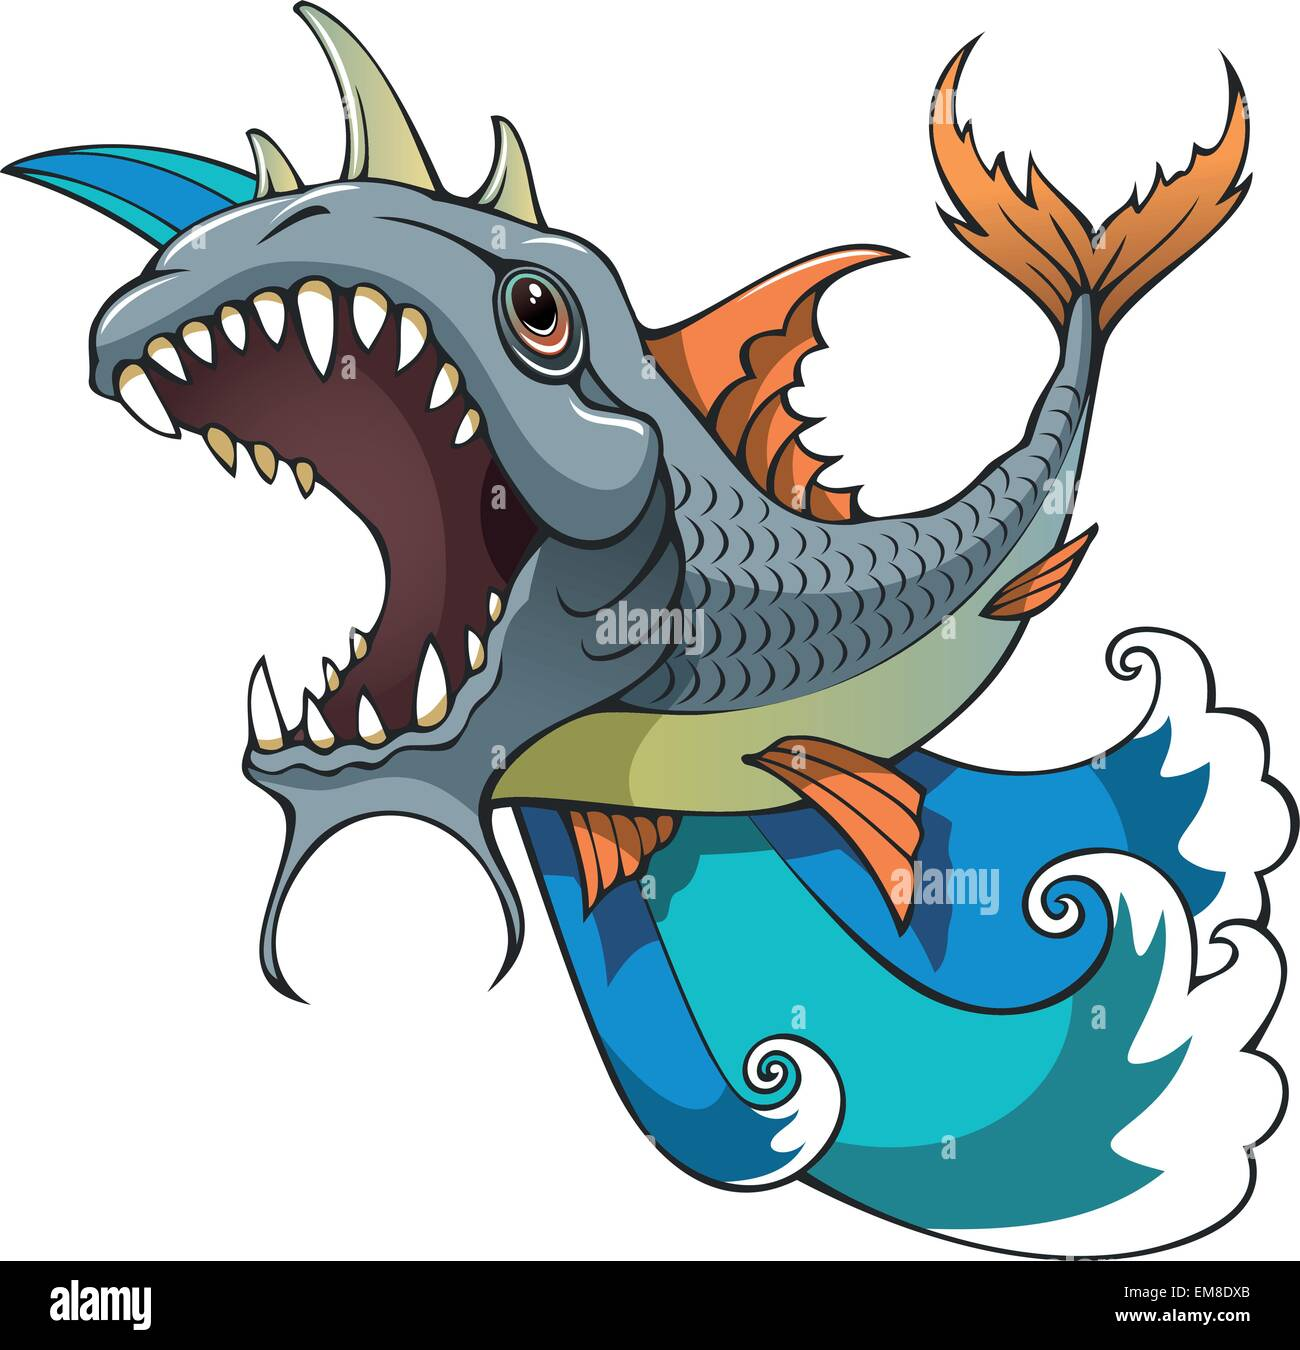 Monster fish - Stock Image